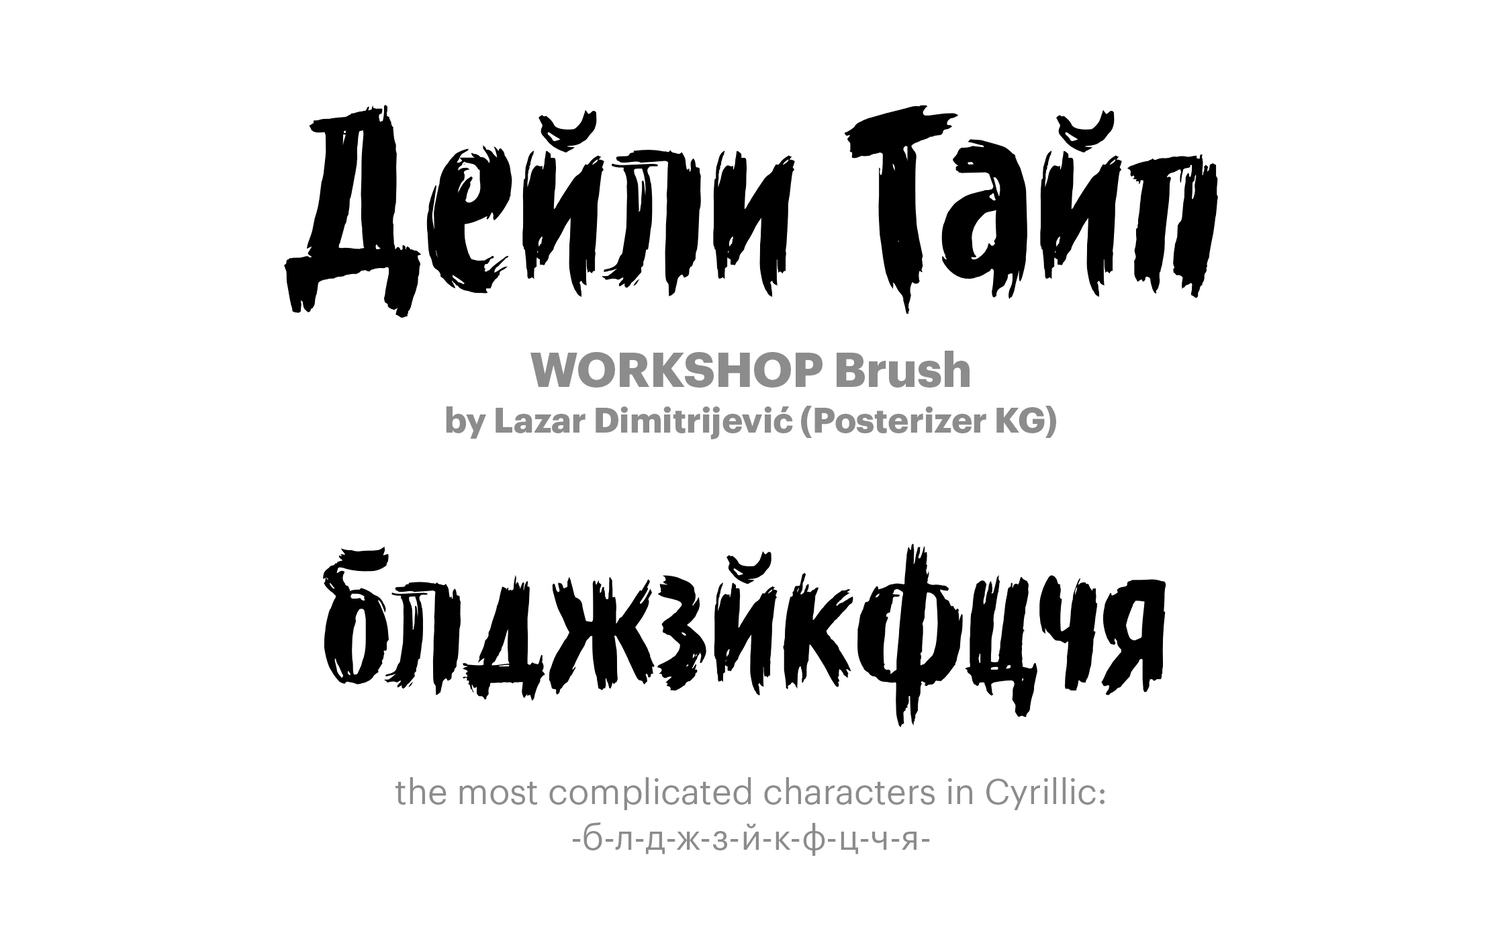 WORKSHOP-Brush-by-Lazar-Dimitrijević-(Posterizer-KG)